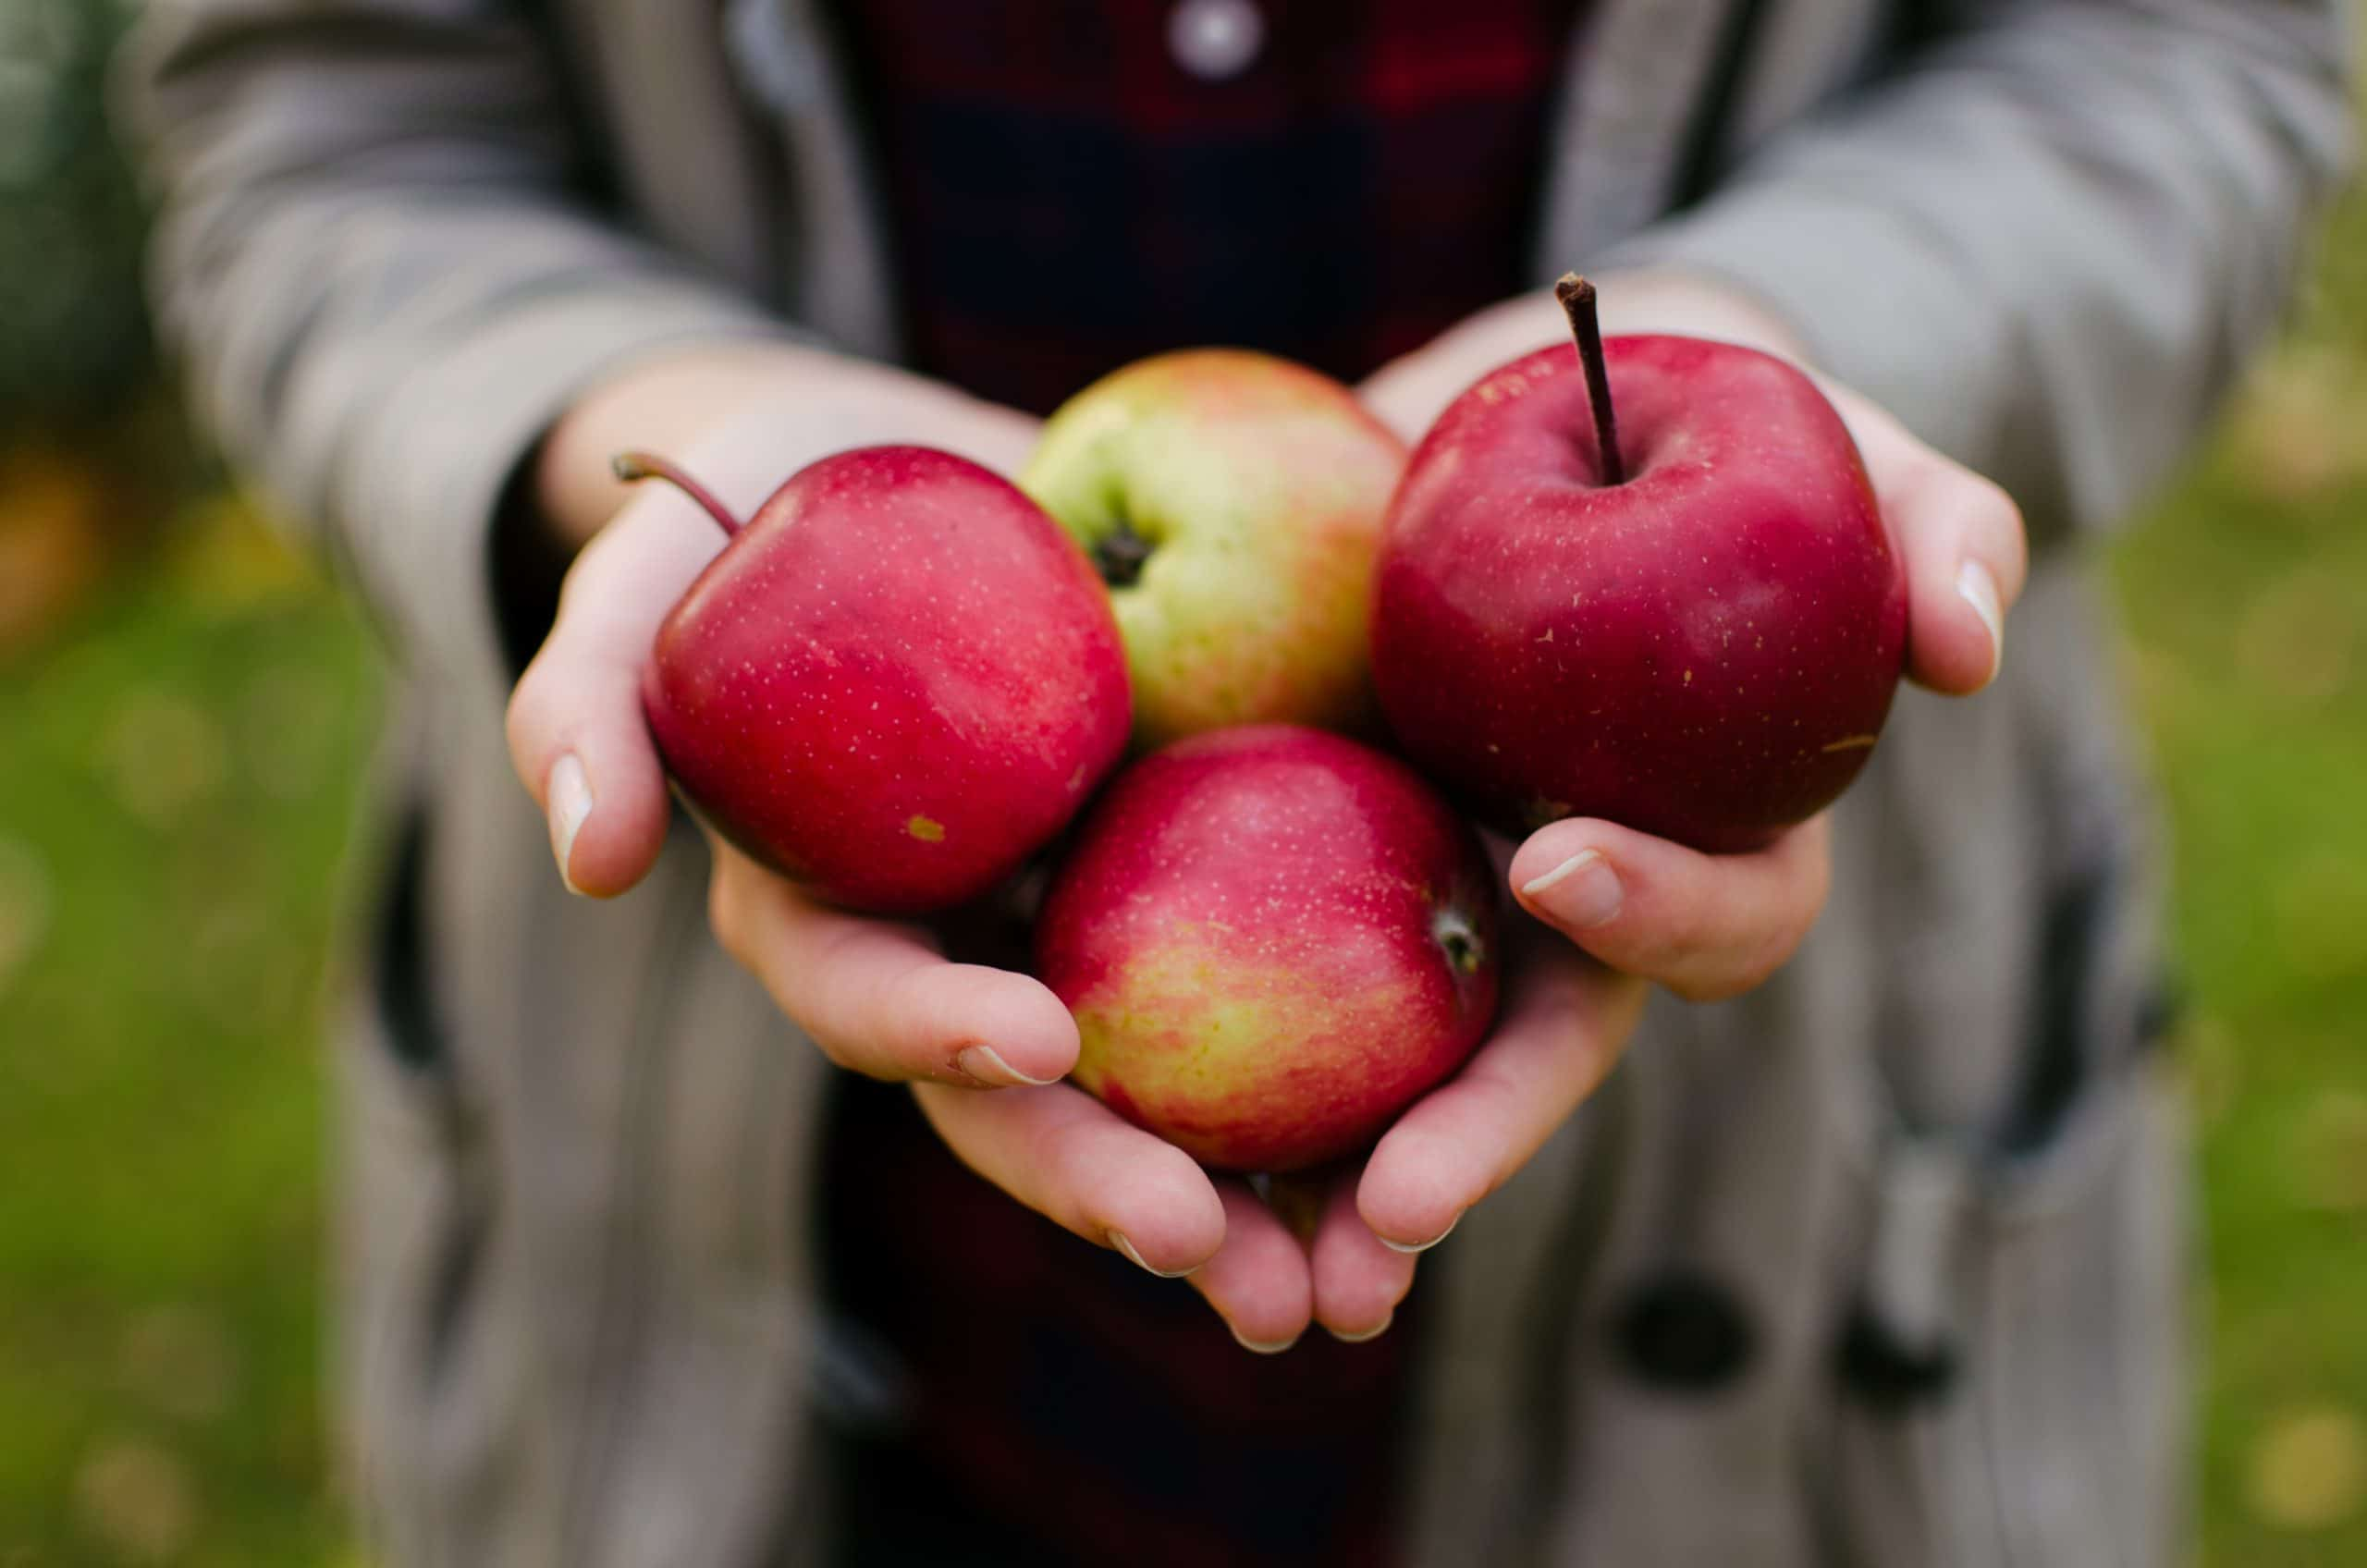 Is Apple Good For Constipation?